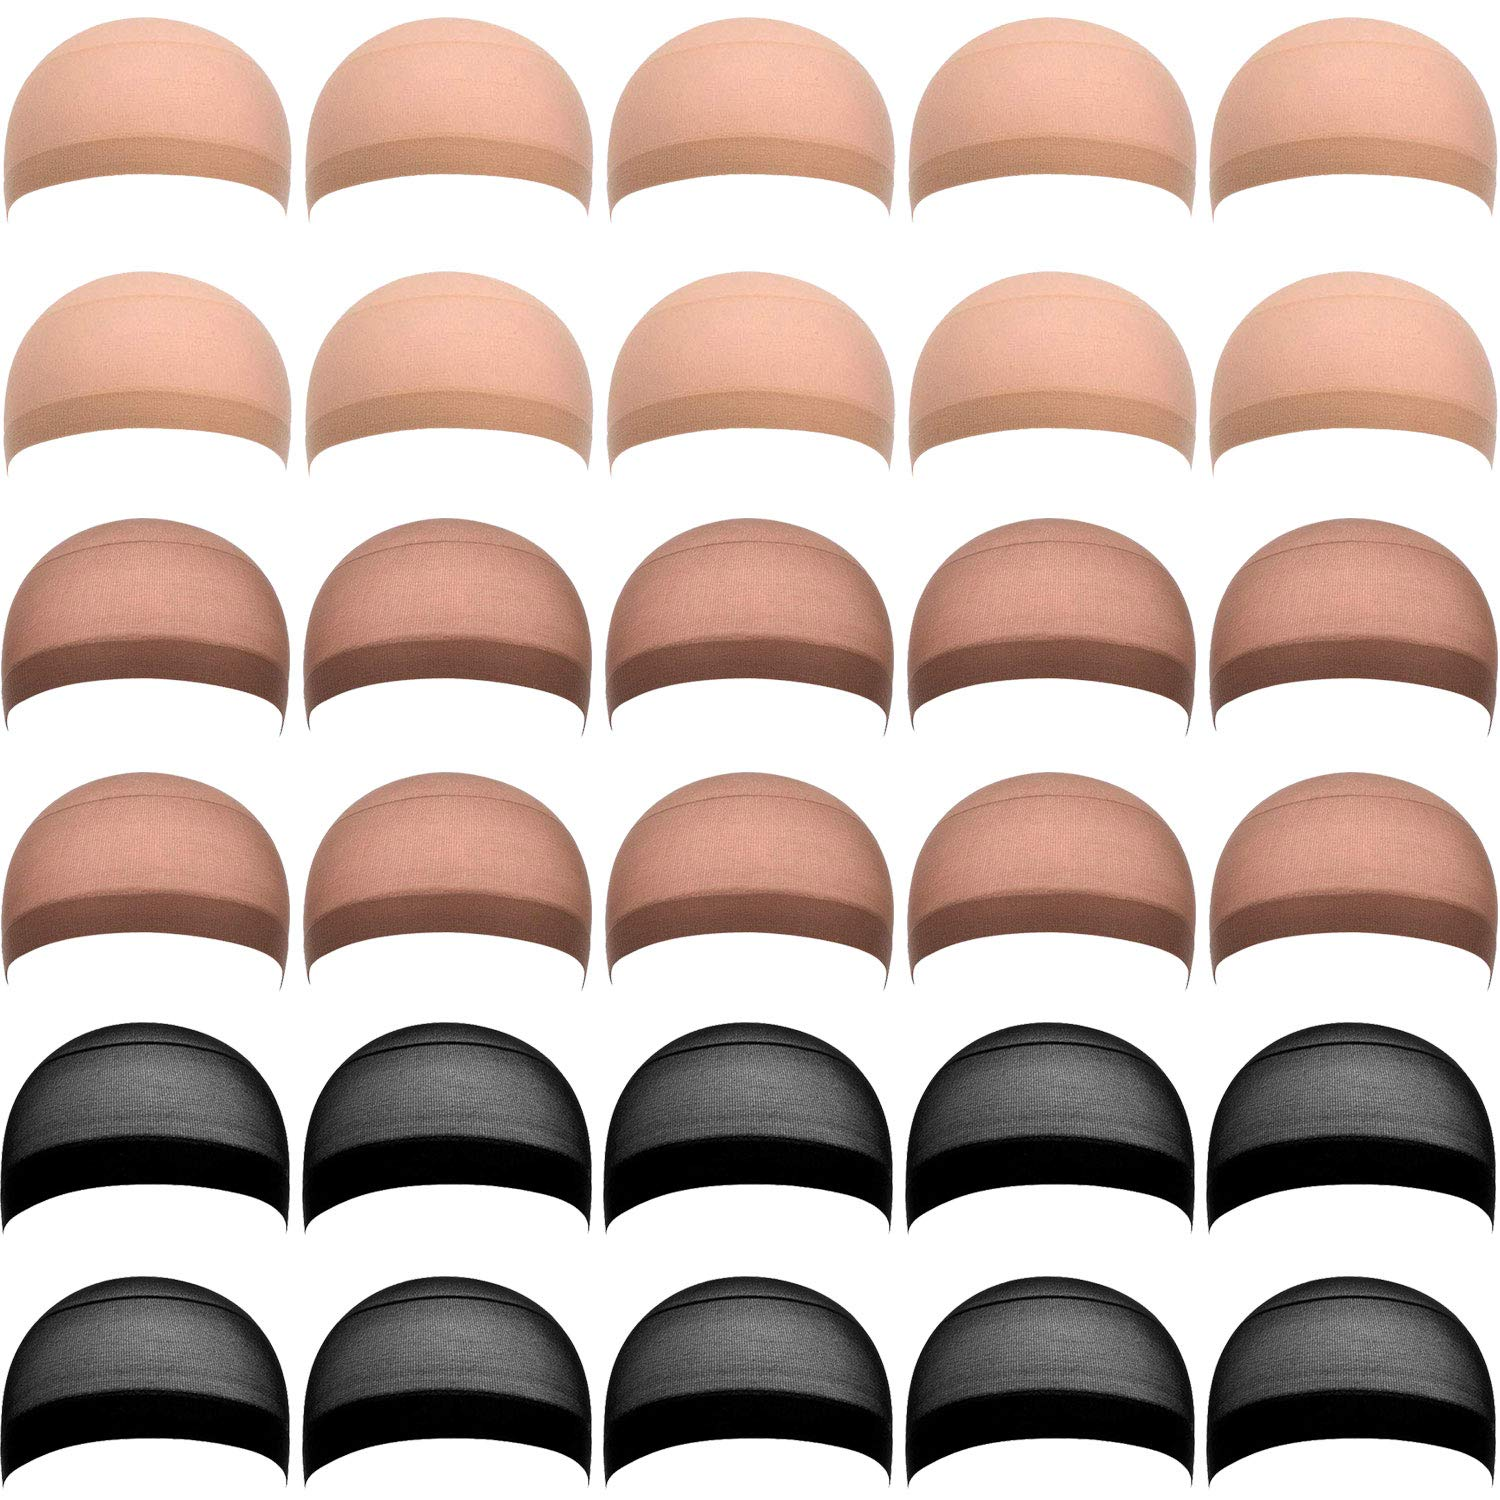 eBoot 30 Pieces Nylon Wig Caps for Women and Men (Skin, Black, Light Brown) by eBoot